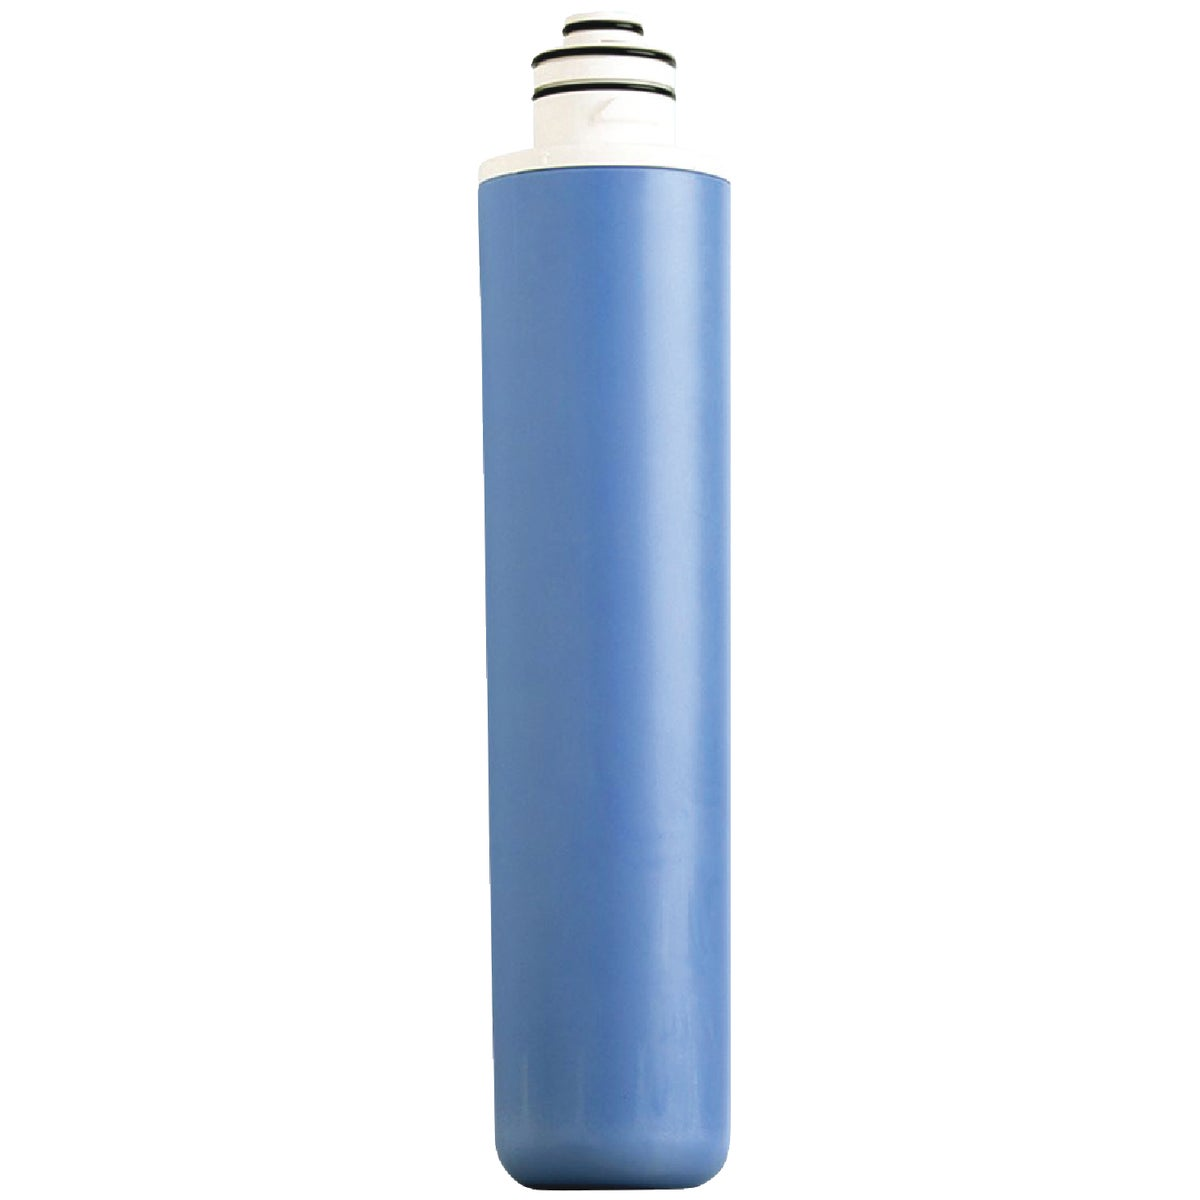 FILTER CARTRIDGE - 750R by Culligan